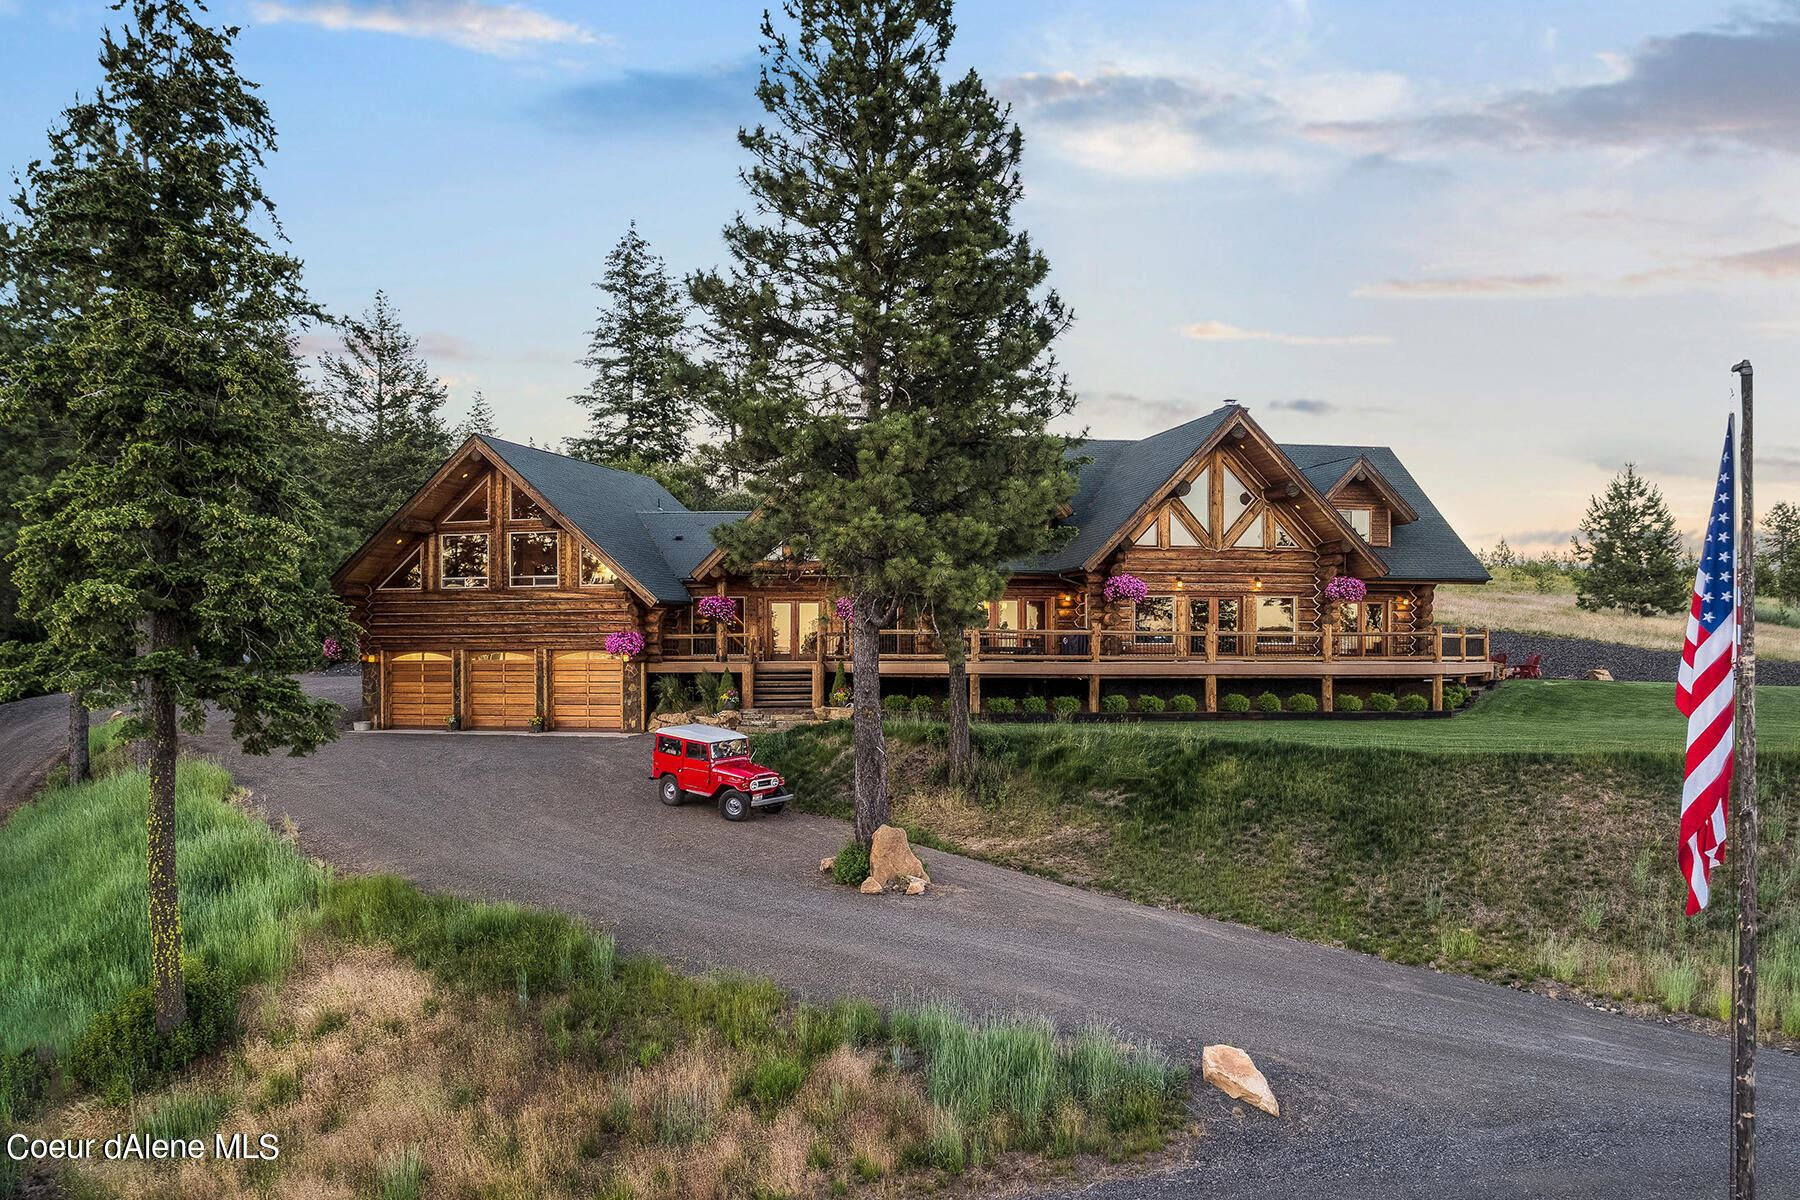 17442 Painted Rose Rd                                                                               Worley                                                                      , ID - $4,500,000